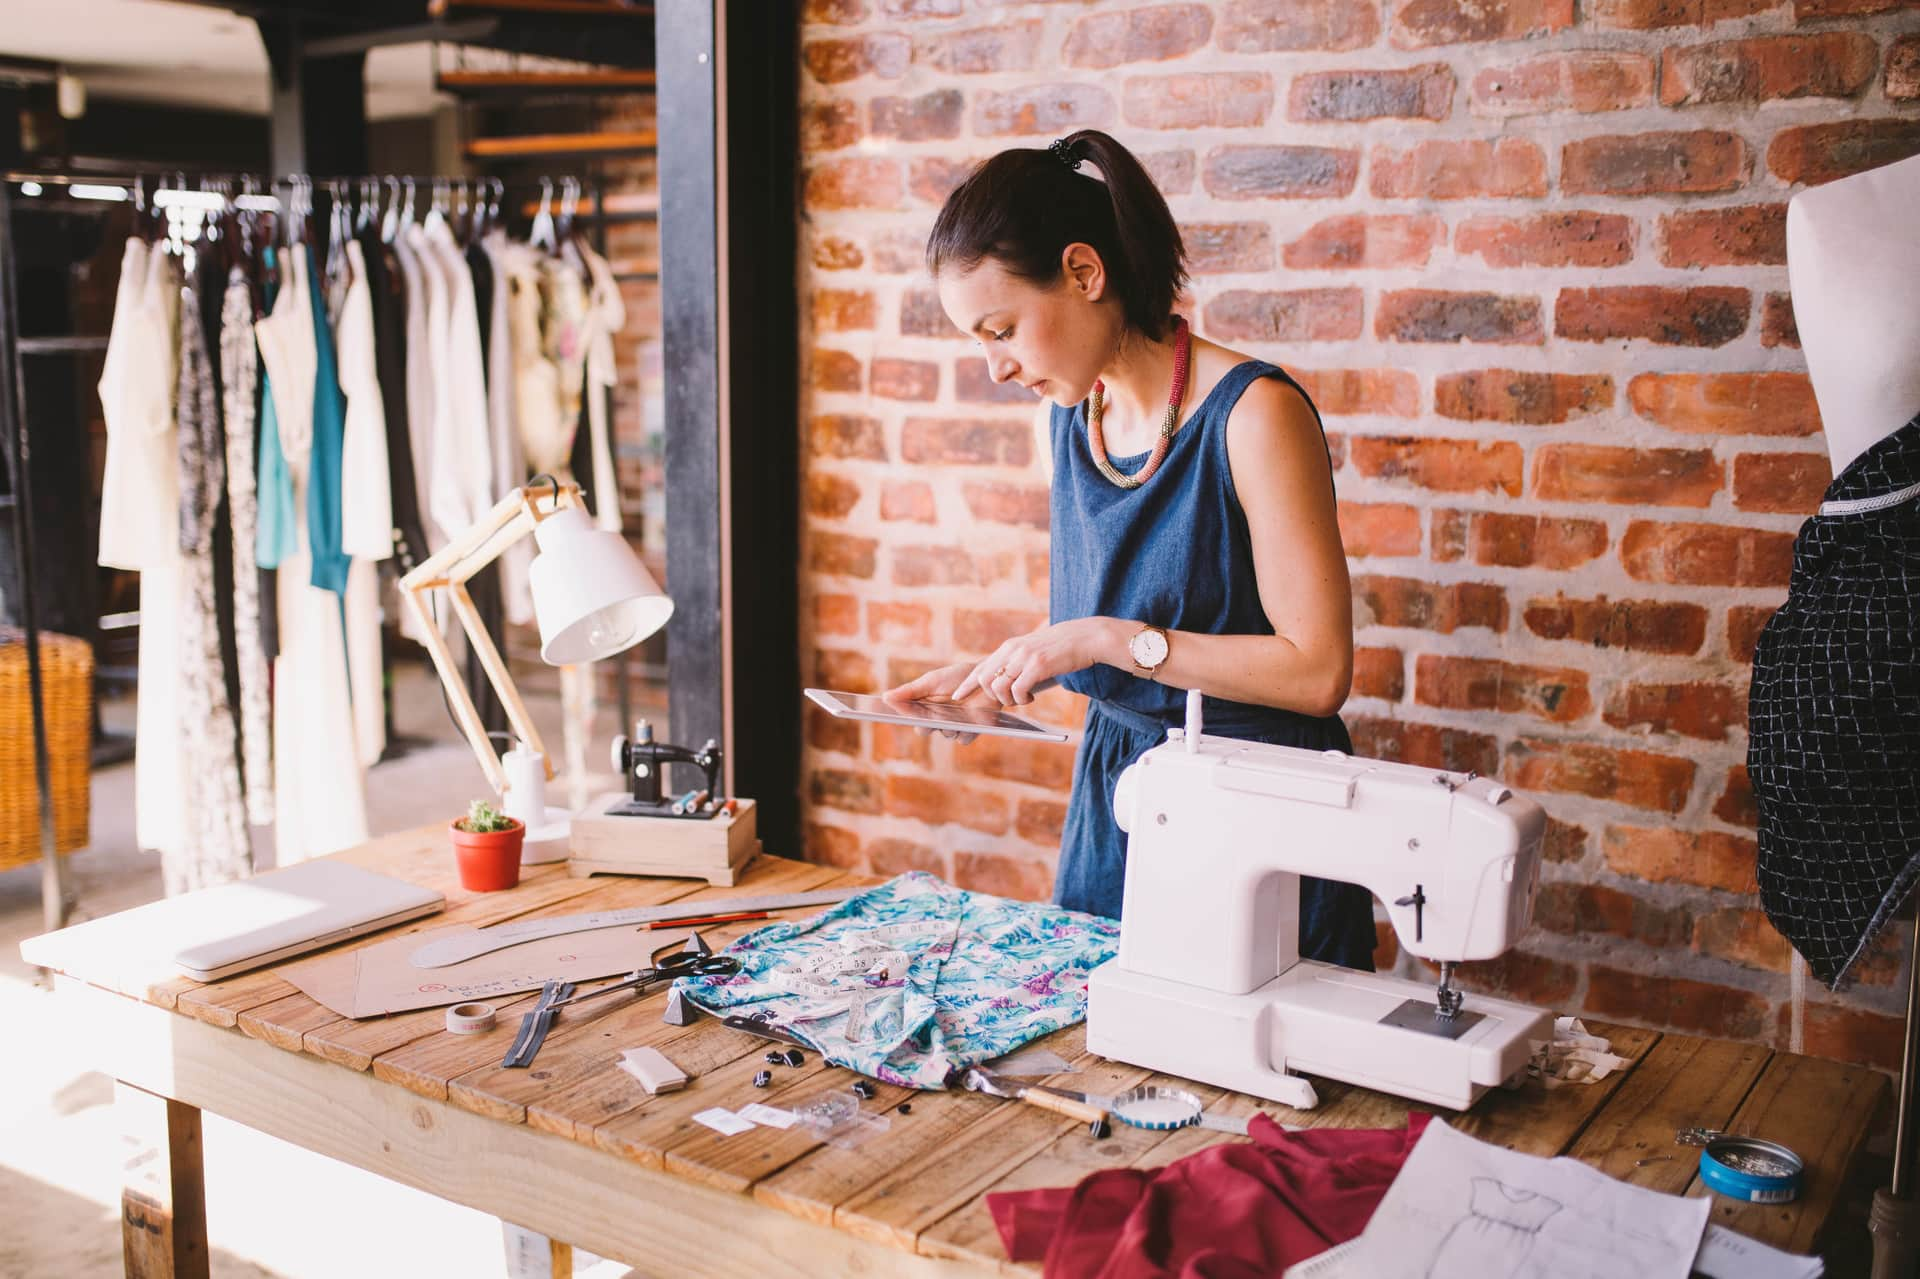 Fashion designer working with textiles in her boutique and ordering supplies on a digital tablet